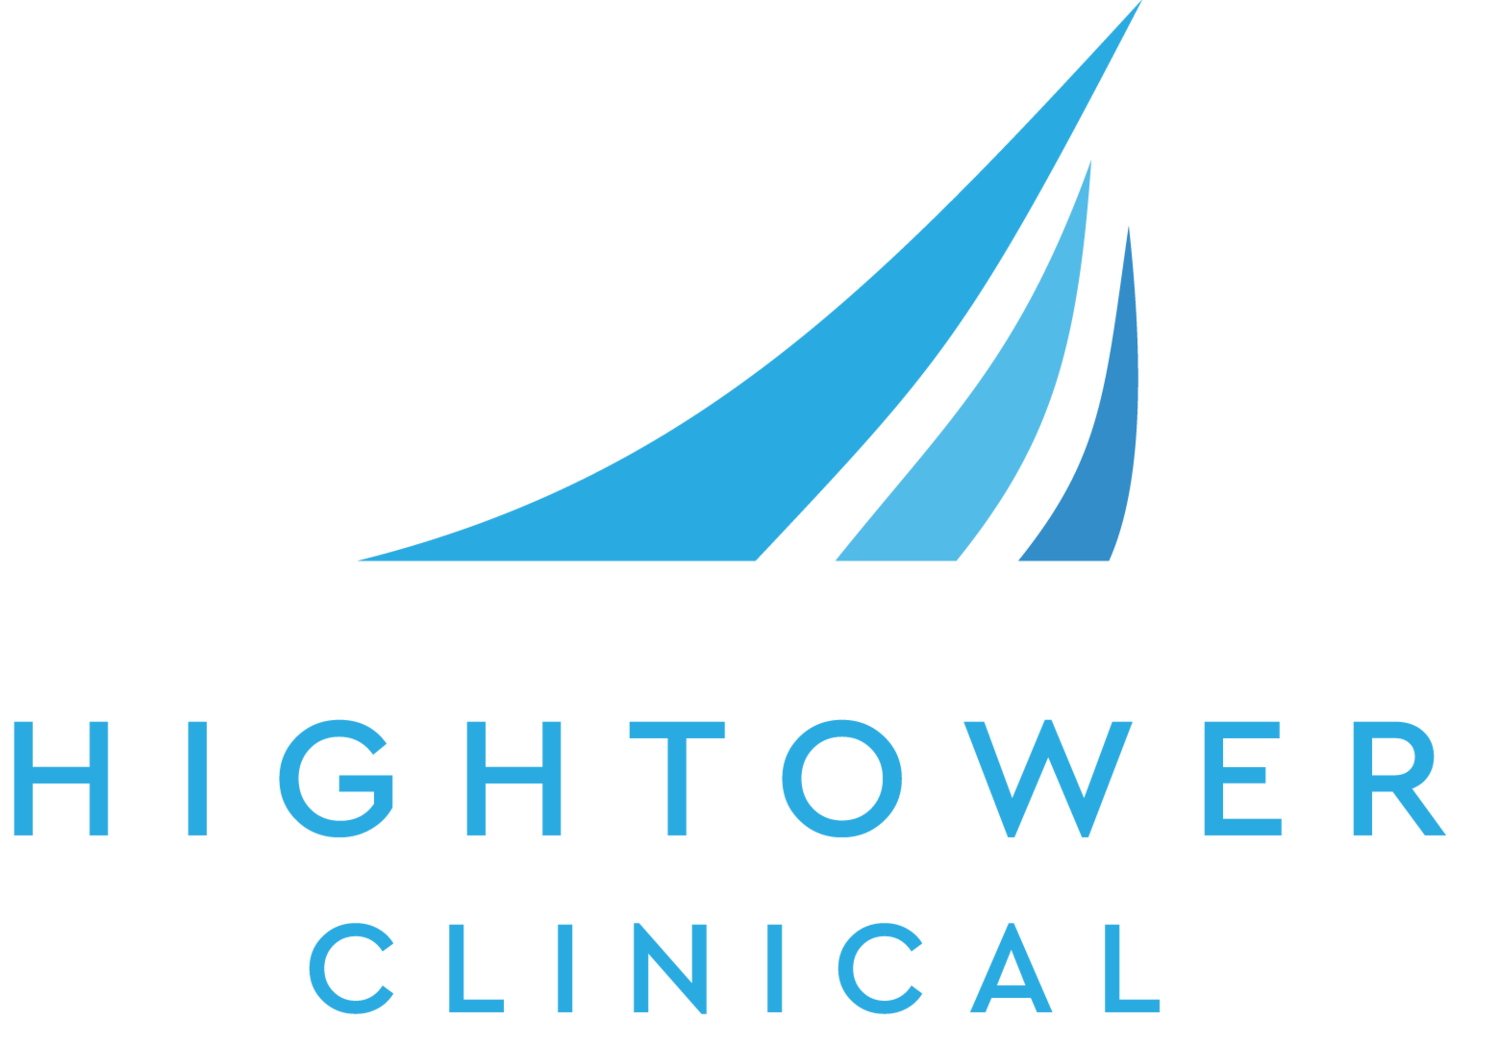 Hightower Clinical